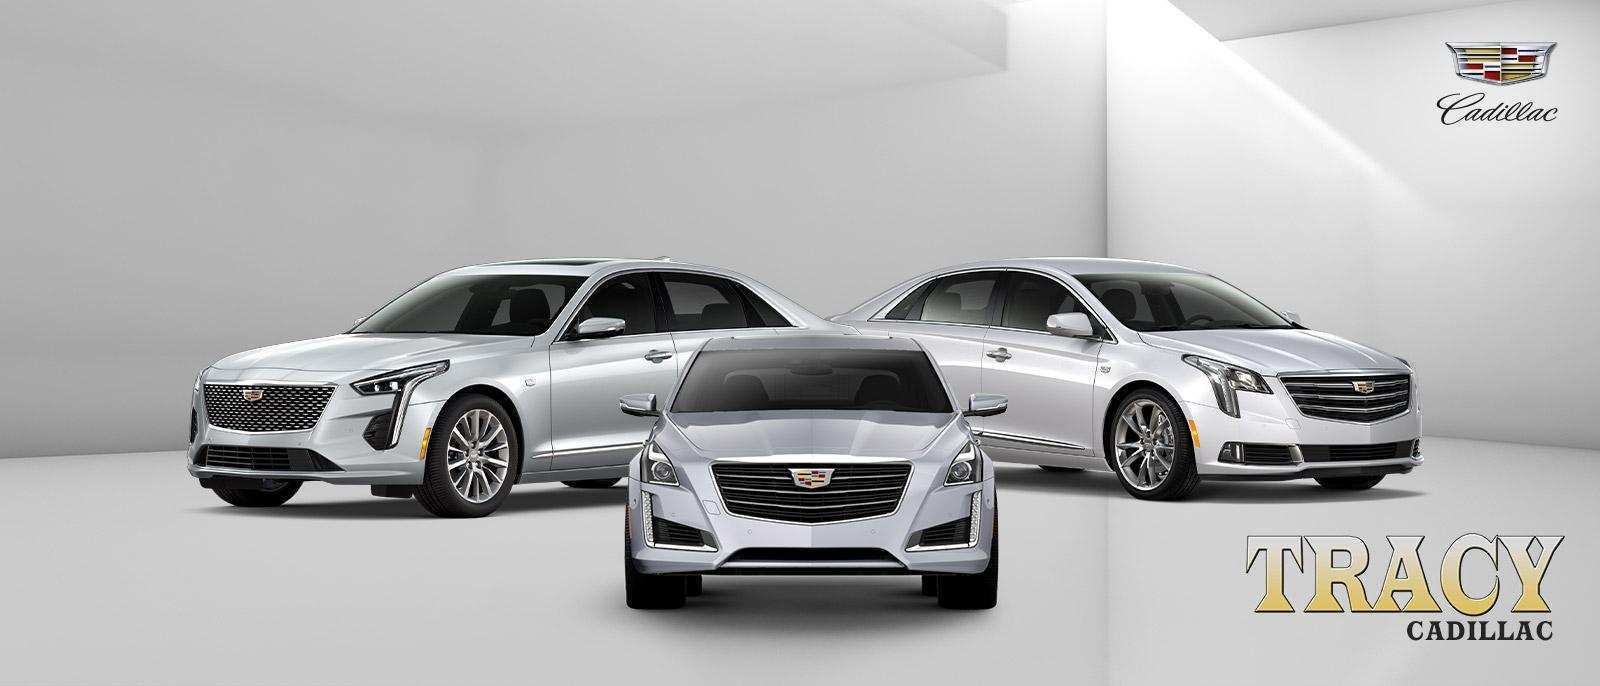 47 All New 2019 Cadillac Lineup Exterior And Interior